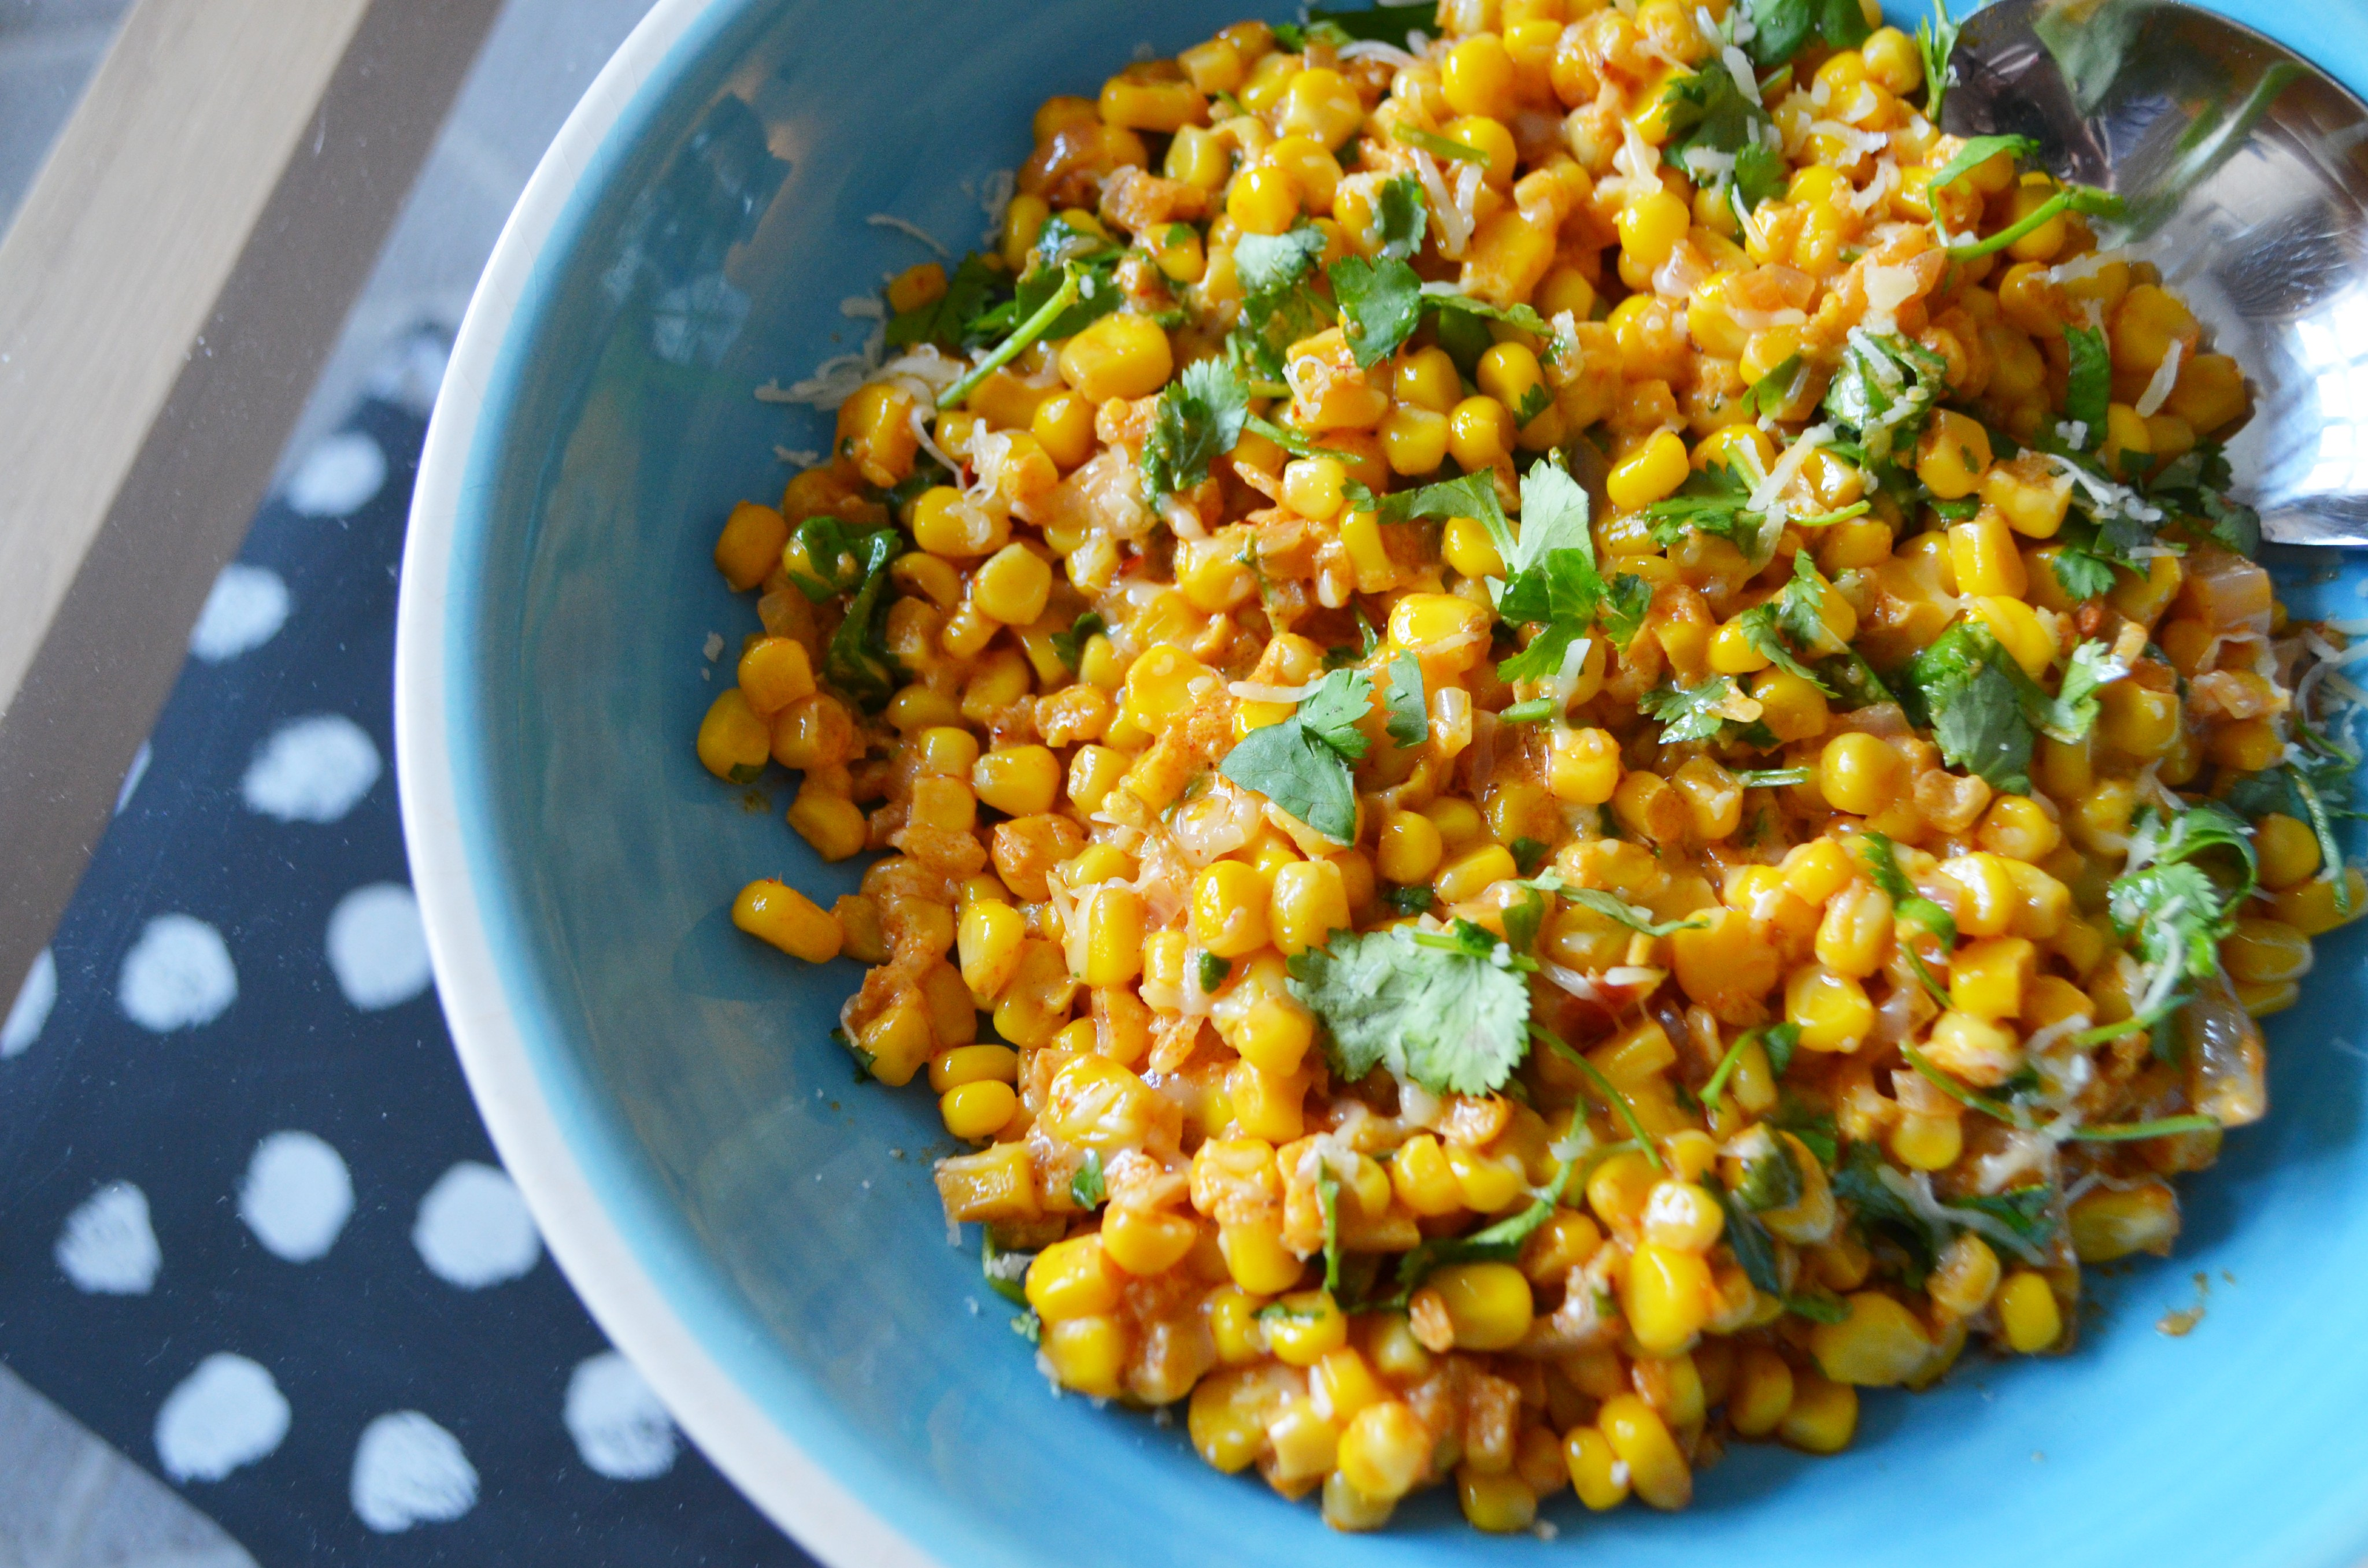 The Cardiff Cwtch - Welsh Lifestyle Blogger - Mexican Street Food, Elote